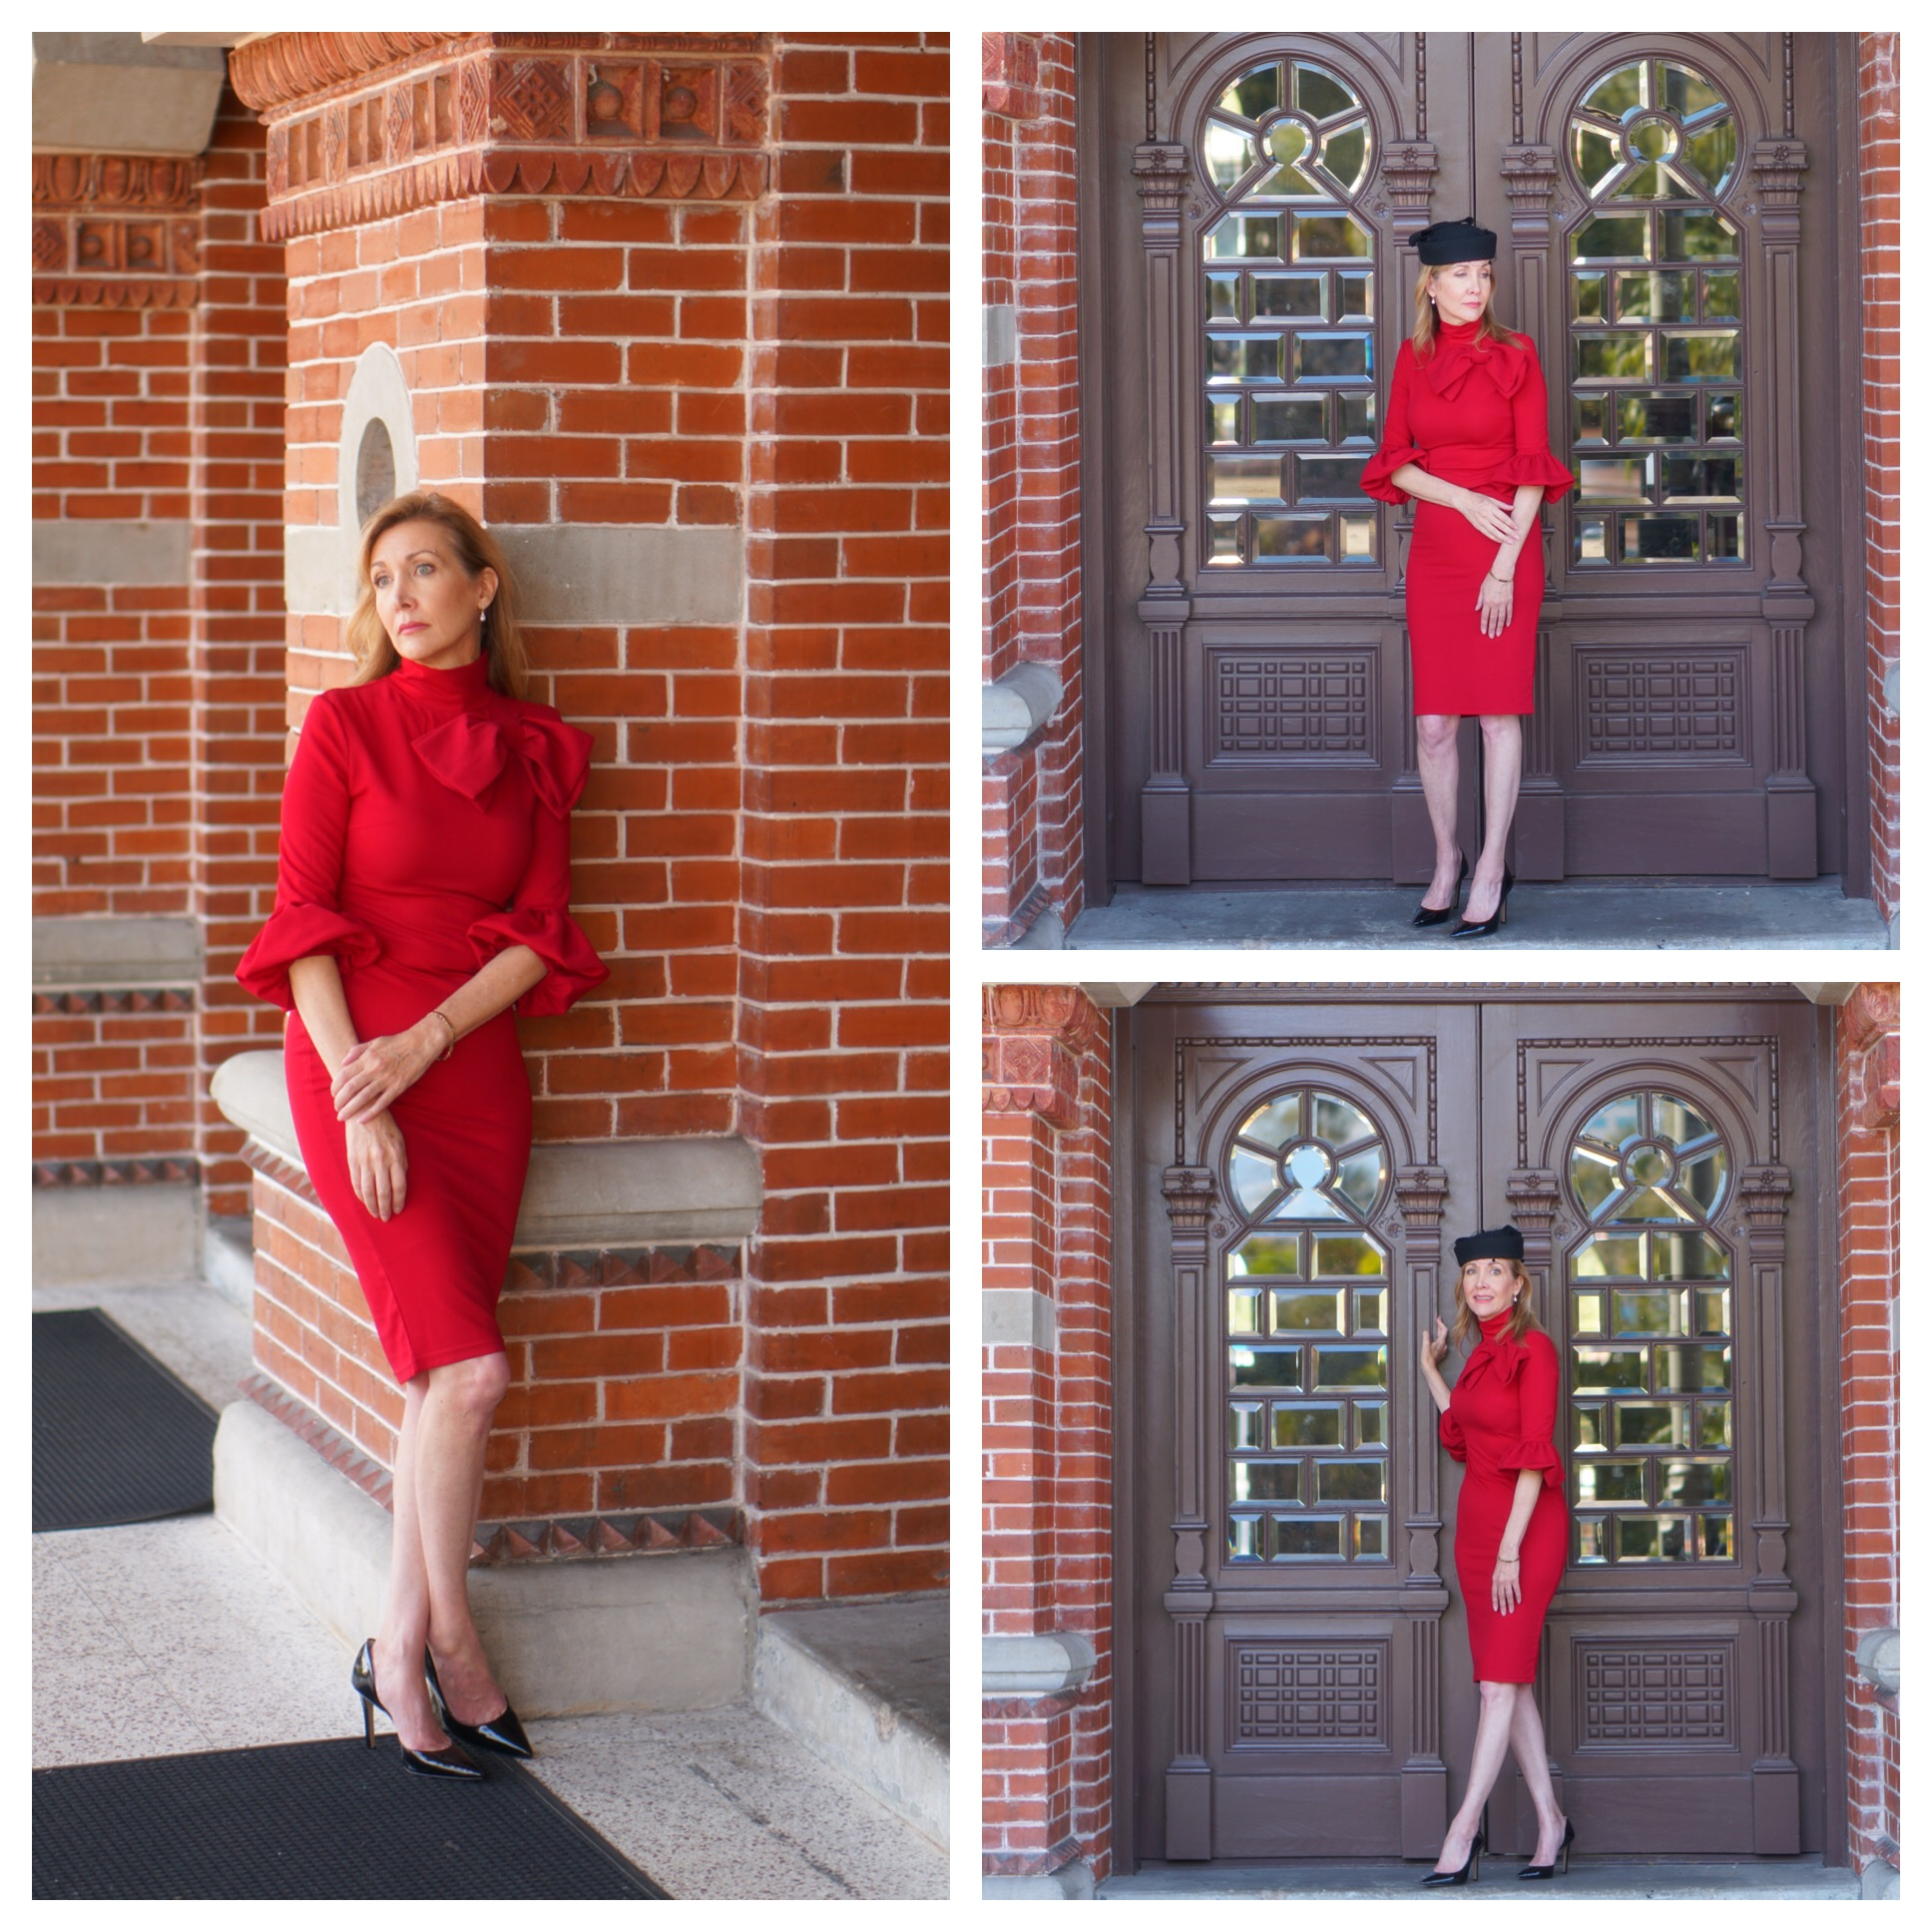 photo collage woman in red dress, three poses